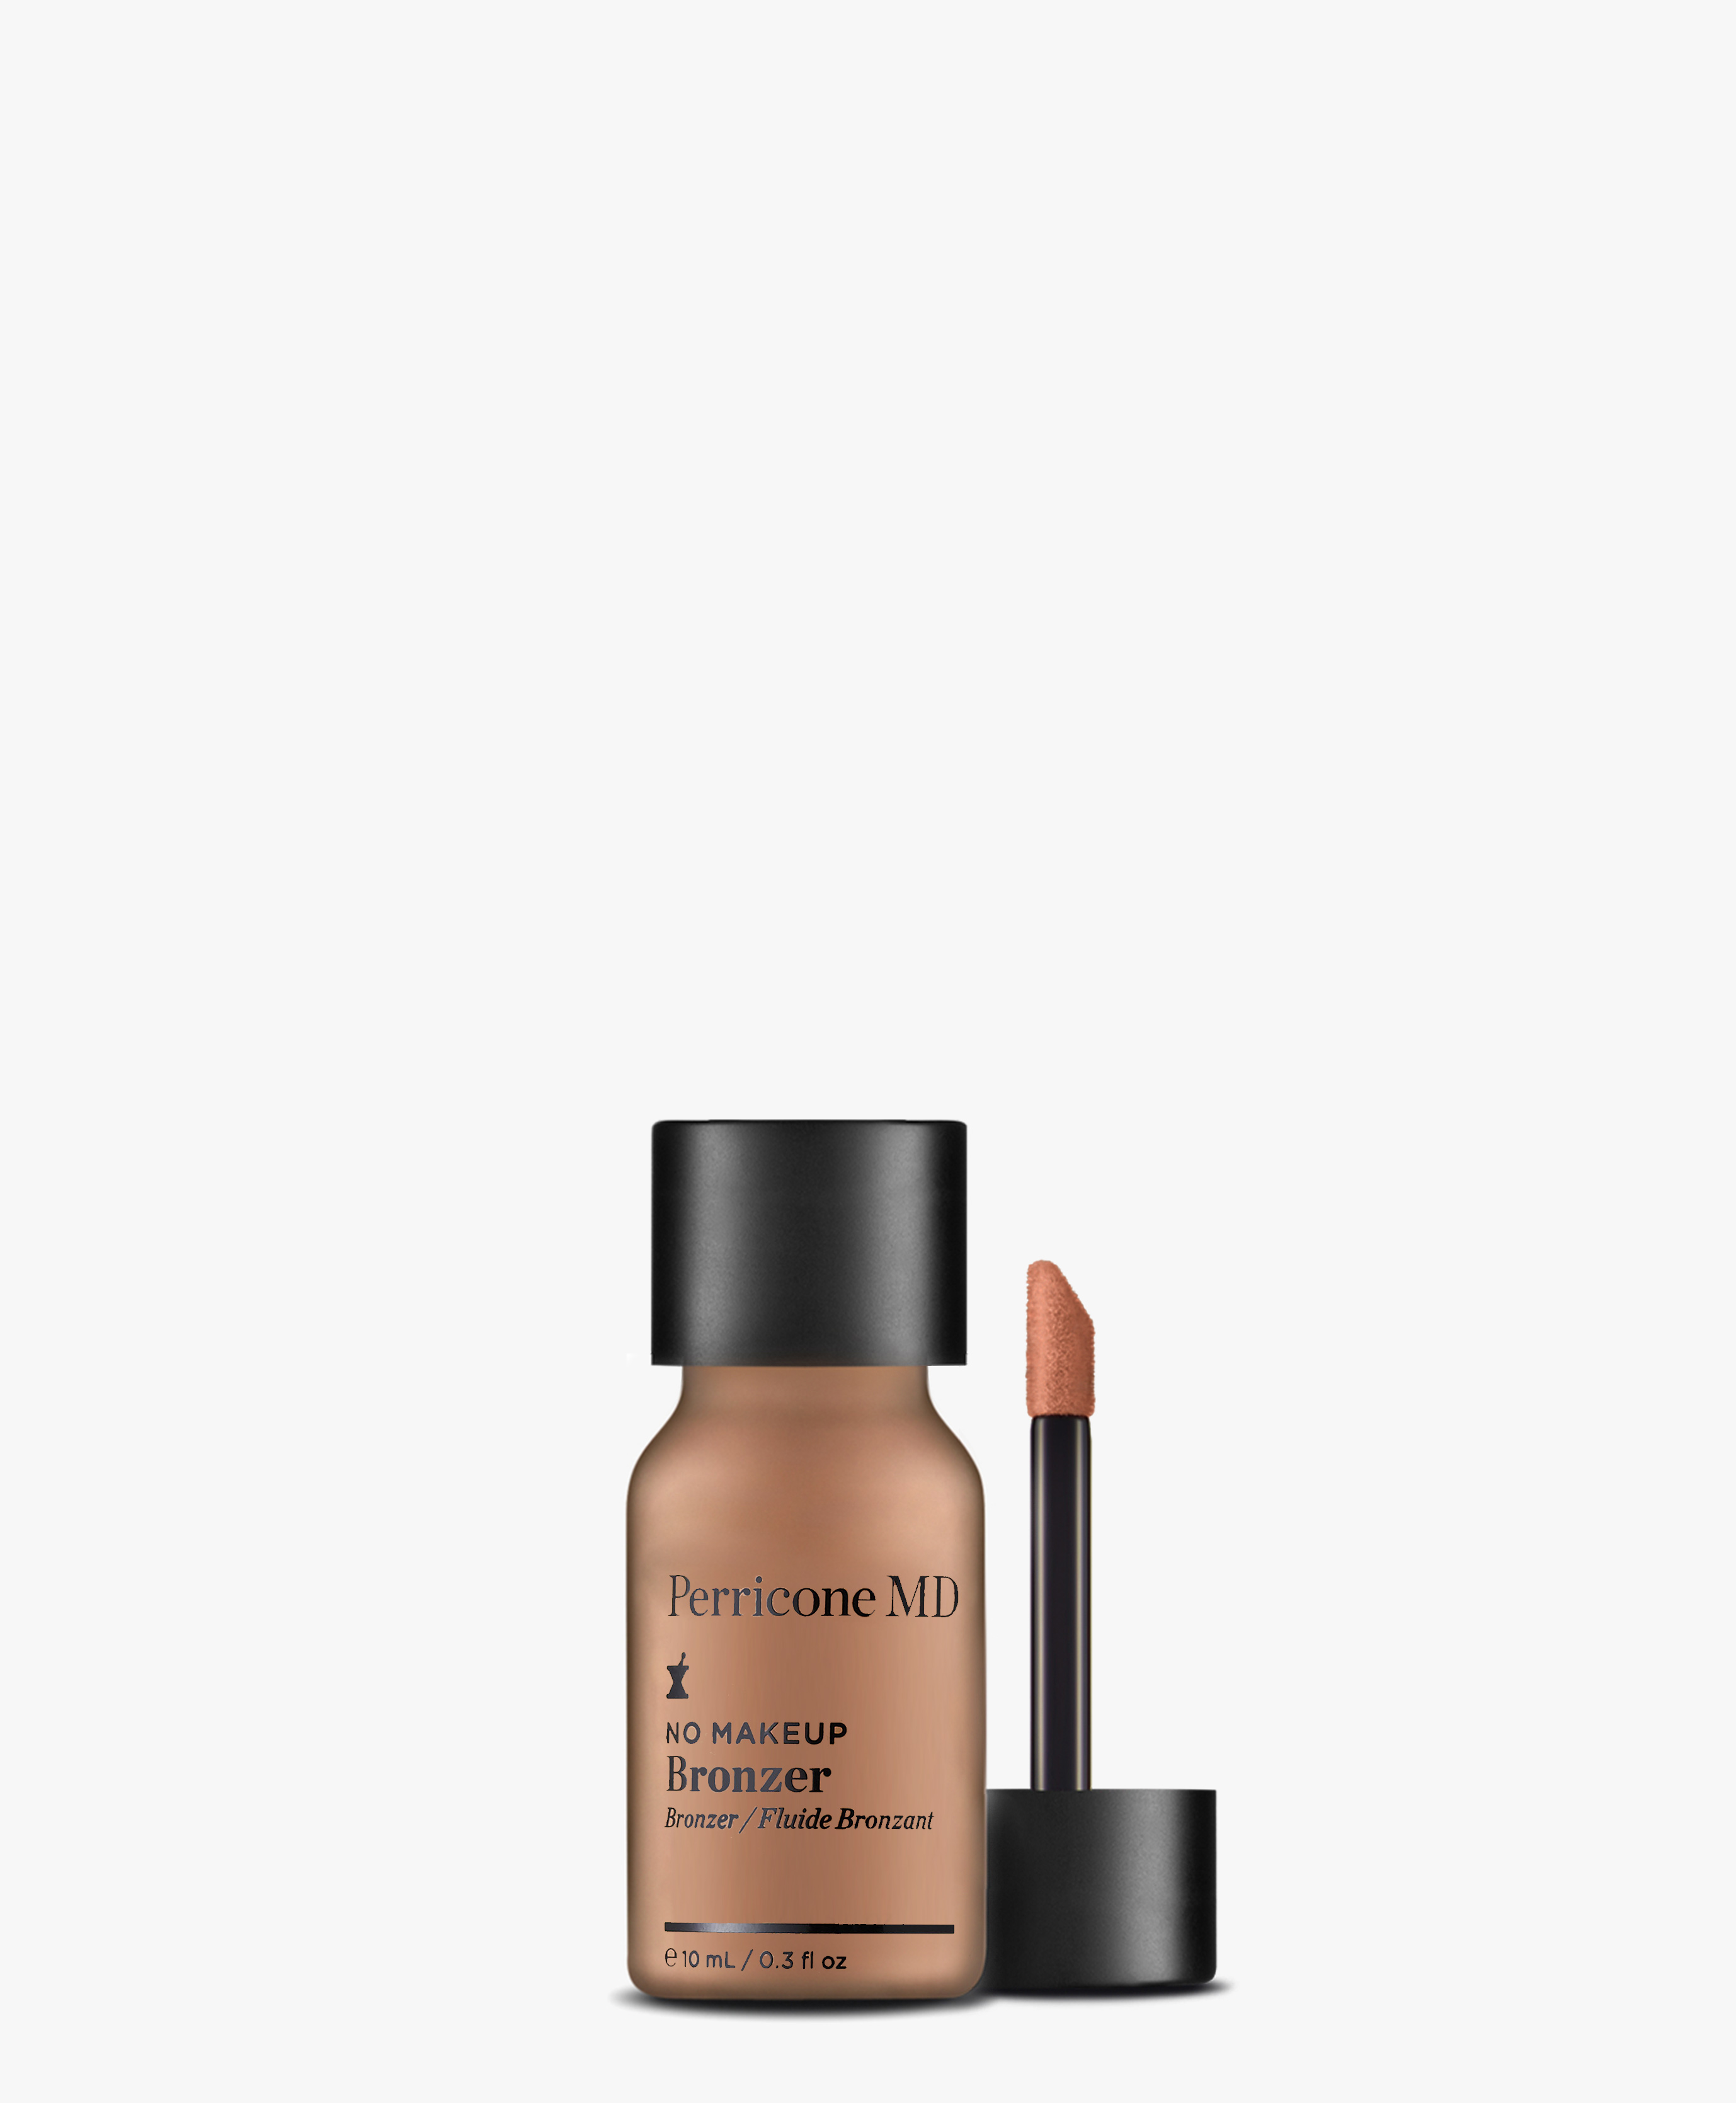 Perricone Md No Makeup Bronzer 1